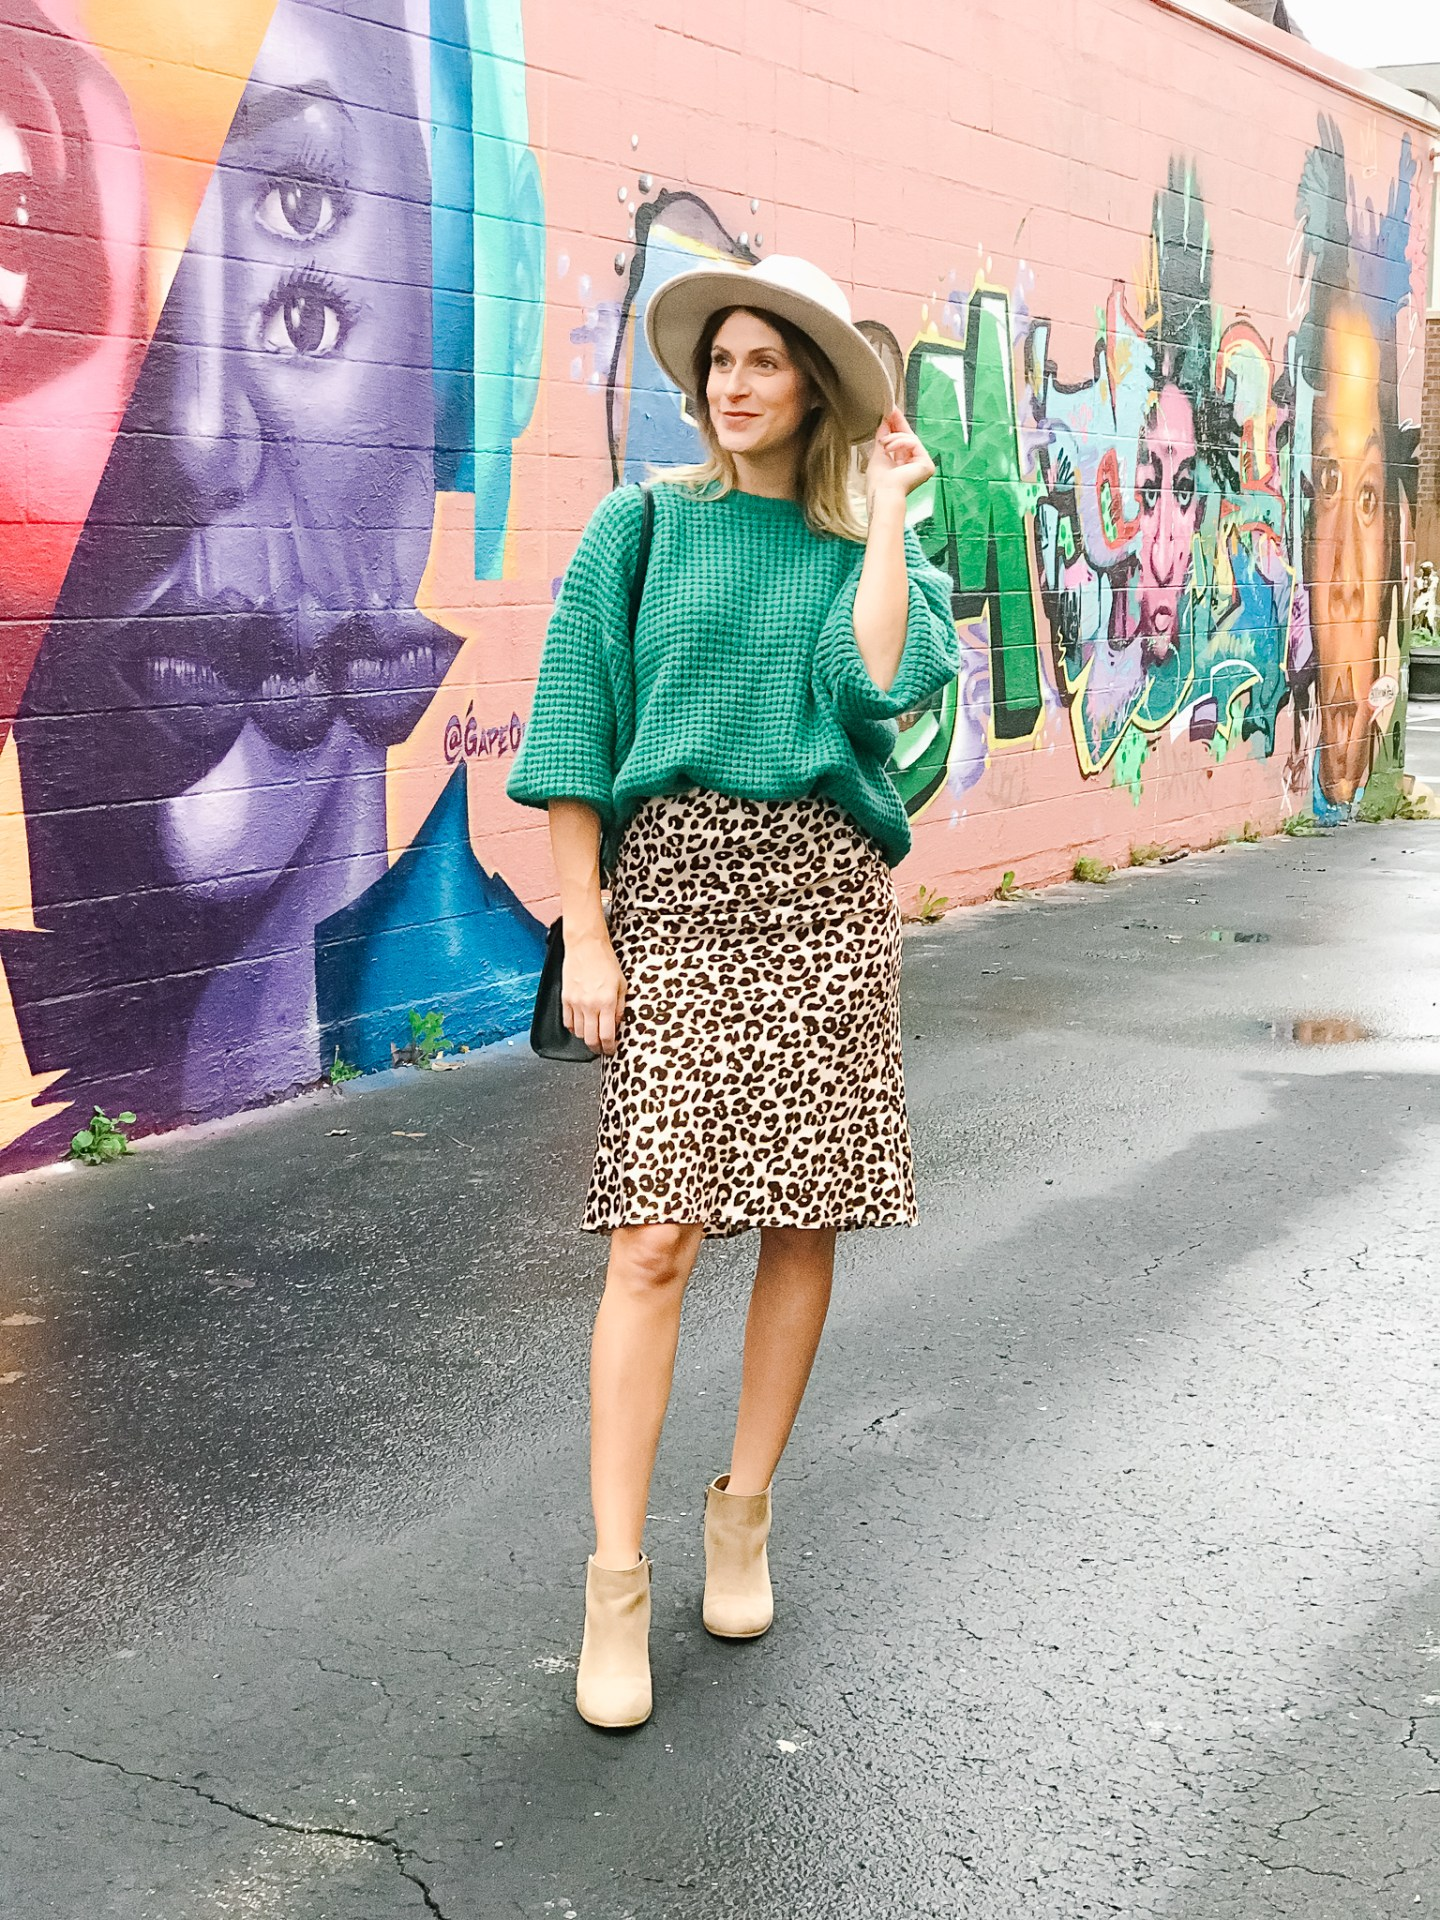 Transition Your Leopard Skirt From Summer to Fall